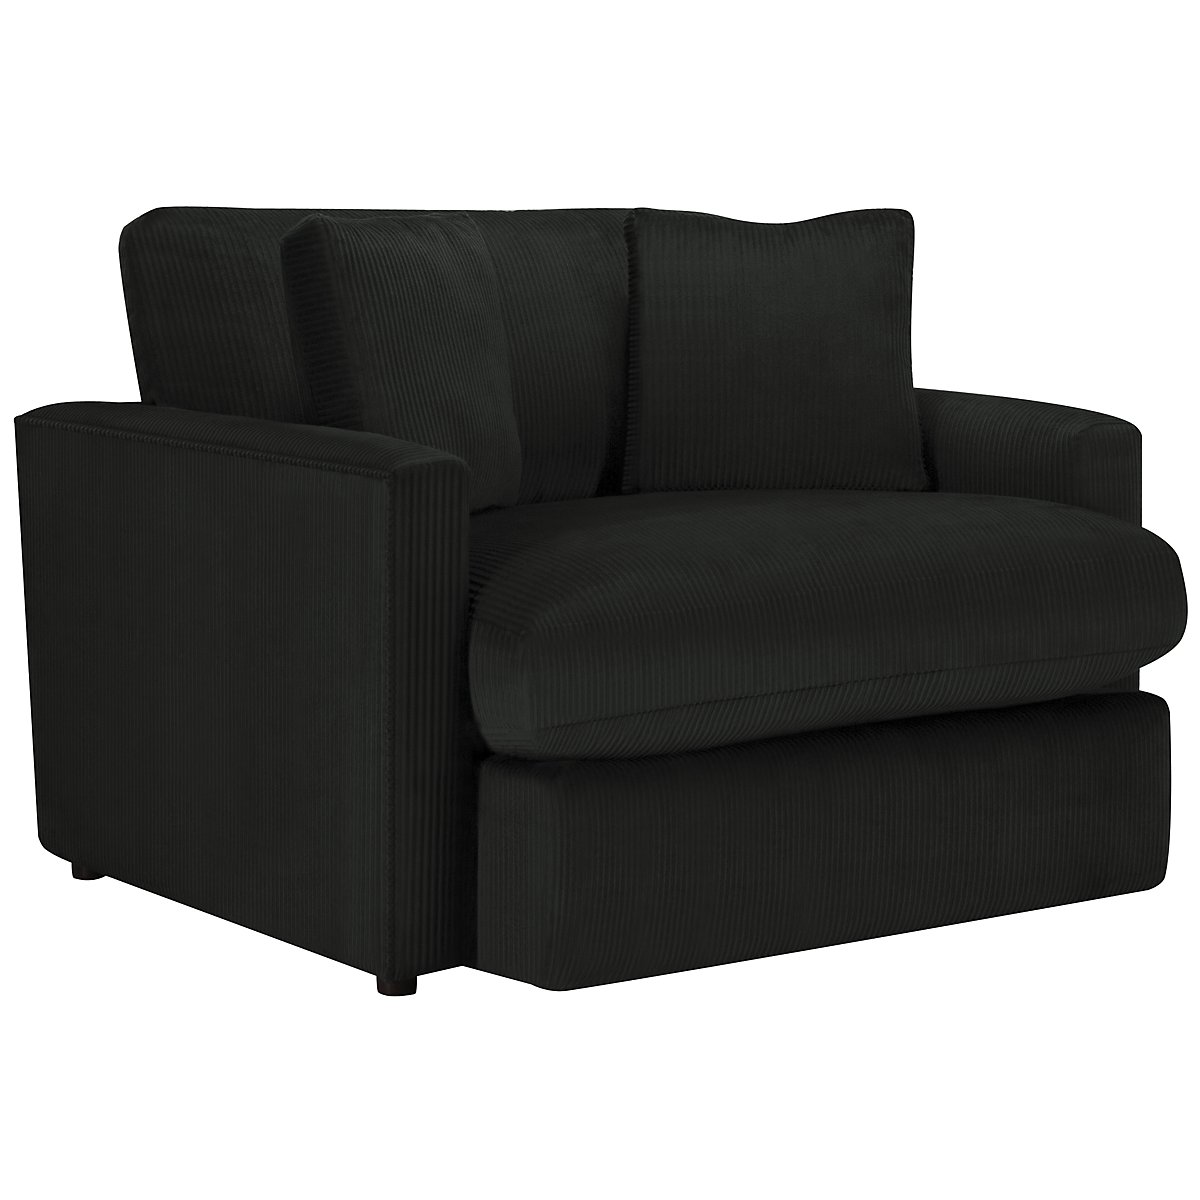 Tara2 Dark Gray Microfiber Chair